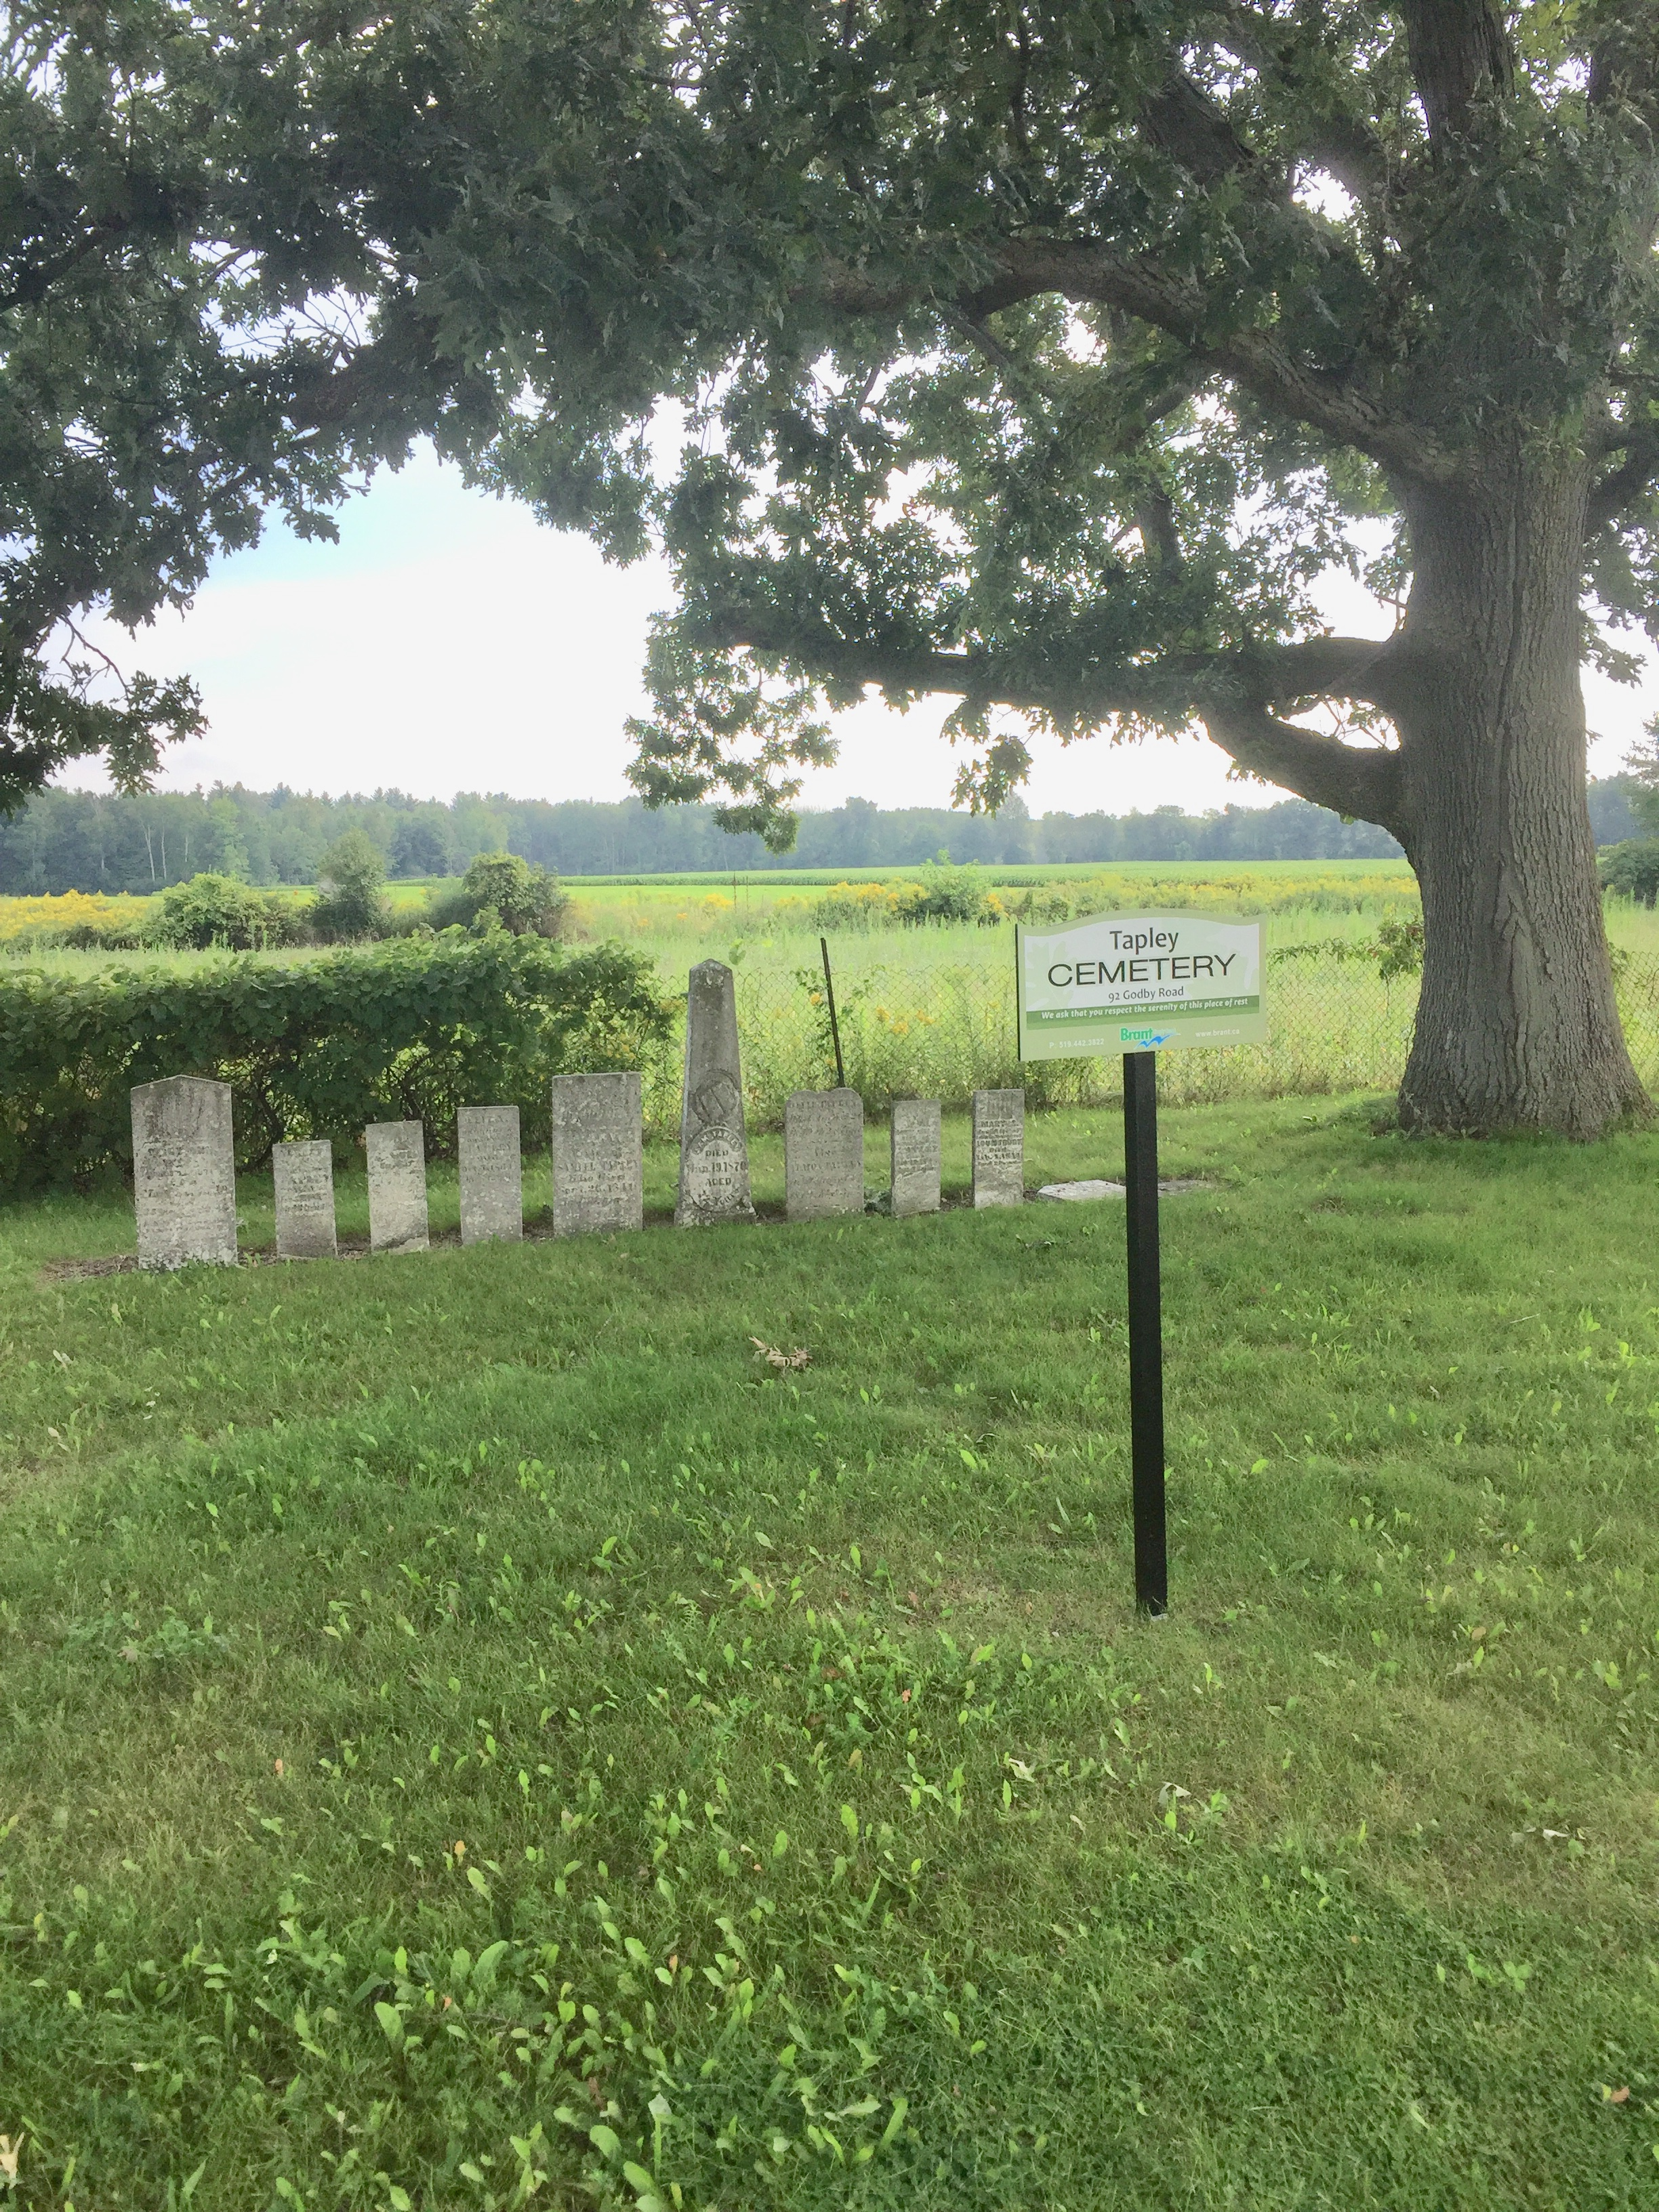 - At Robert's urging the County has adopted a higher care and maintenance standard for the Counties active and inactive cemeteries.